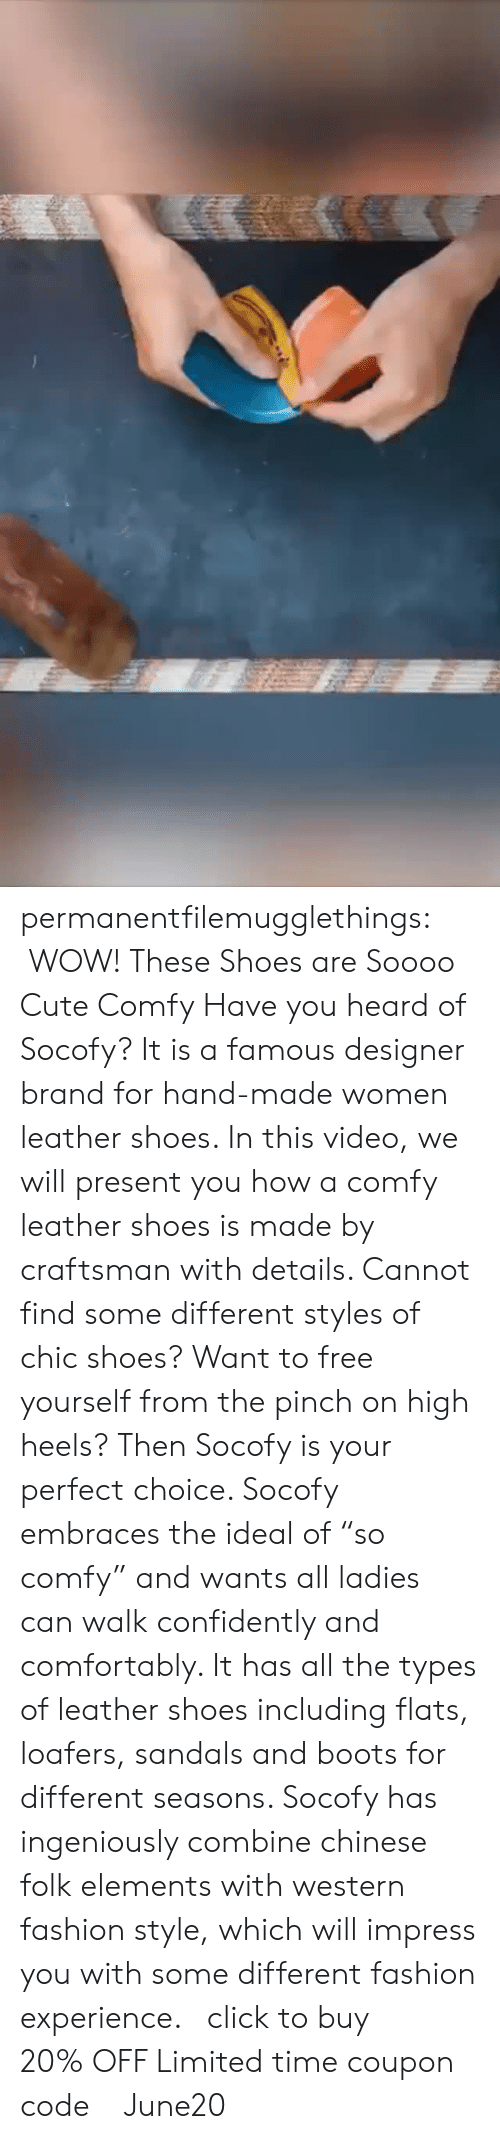 "Click, Cute, and Fashion: permanentfilemugglethings:   WOW! These Shoes are Soooo Cute  Comfy  Have you heard of Socofy? It is a famous designer brand for hand-made women leather shoes. In this video, we will present you how a comfy leather shoes is made by craftsman with details. Cannot find some different styles of chic shoes? Want to free yourself from the pinch on high heels? Then Socofy is your perfect choice. Socofy embraces the ideal of ""so comfy"" and wants all ladies can walk confidently and comfortably. It has all the types of leather shoes including flats, loafers, sandals and boots for different seasons. Socofy has ingeniously combine chinese folk elements with western fashion style, which will impress you with some different fashion experience.   click to buy!!! 20% OFF Limited time coupon code : June20"